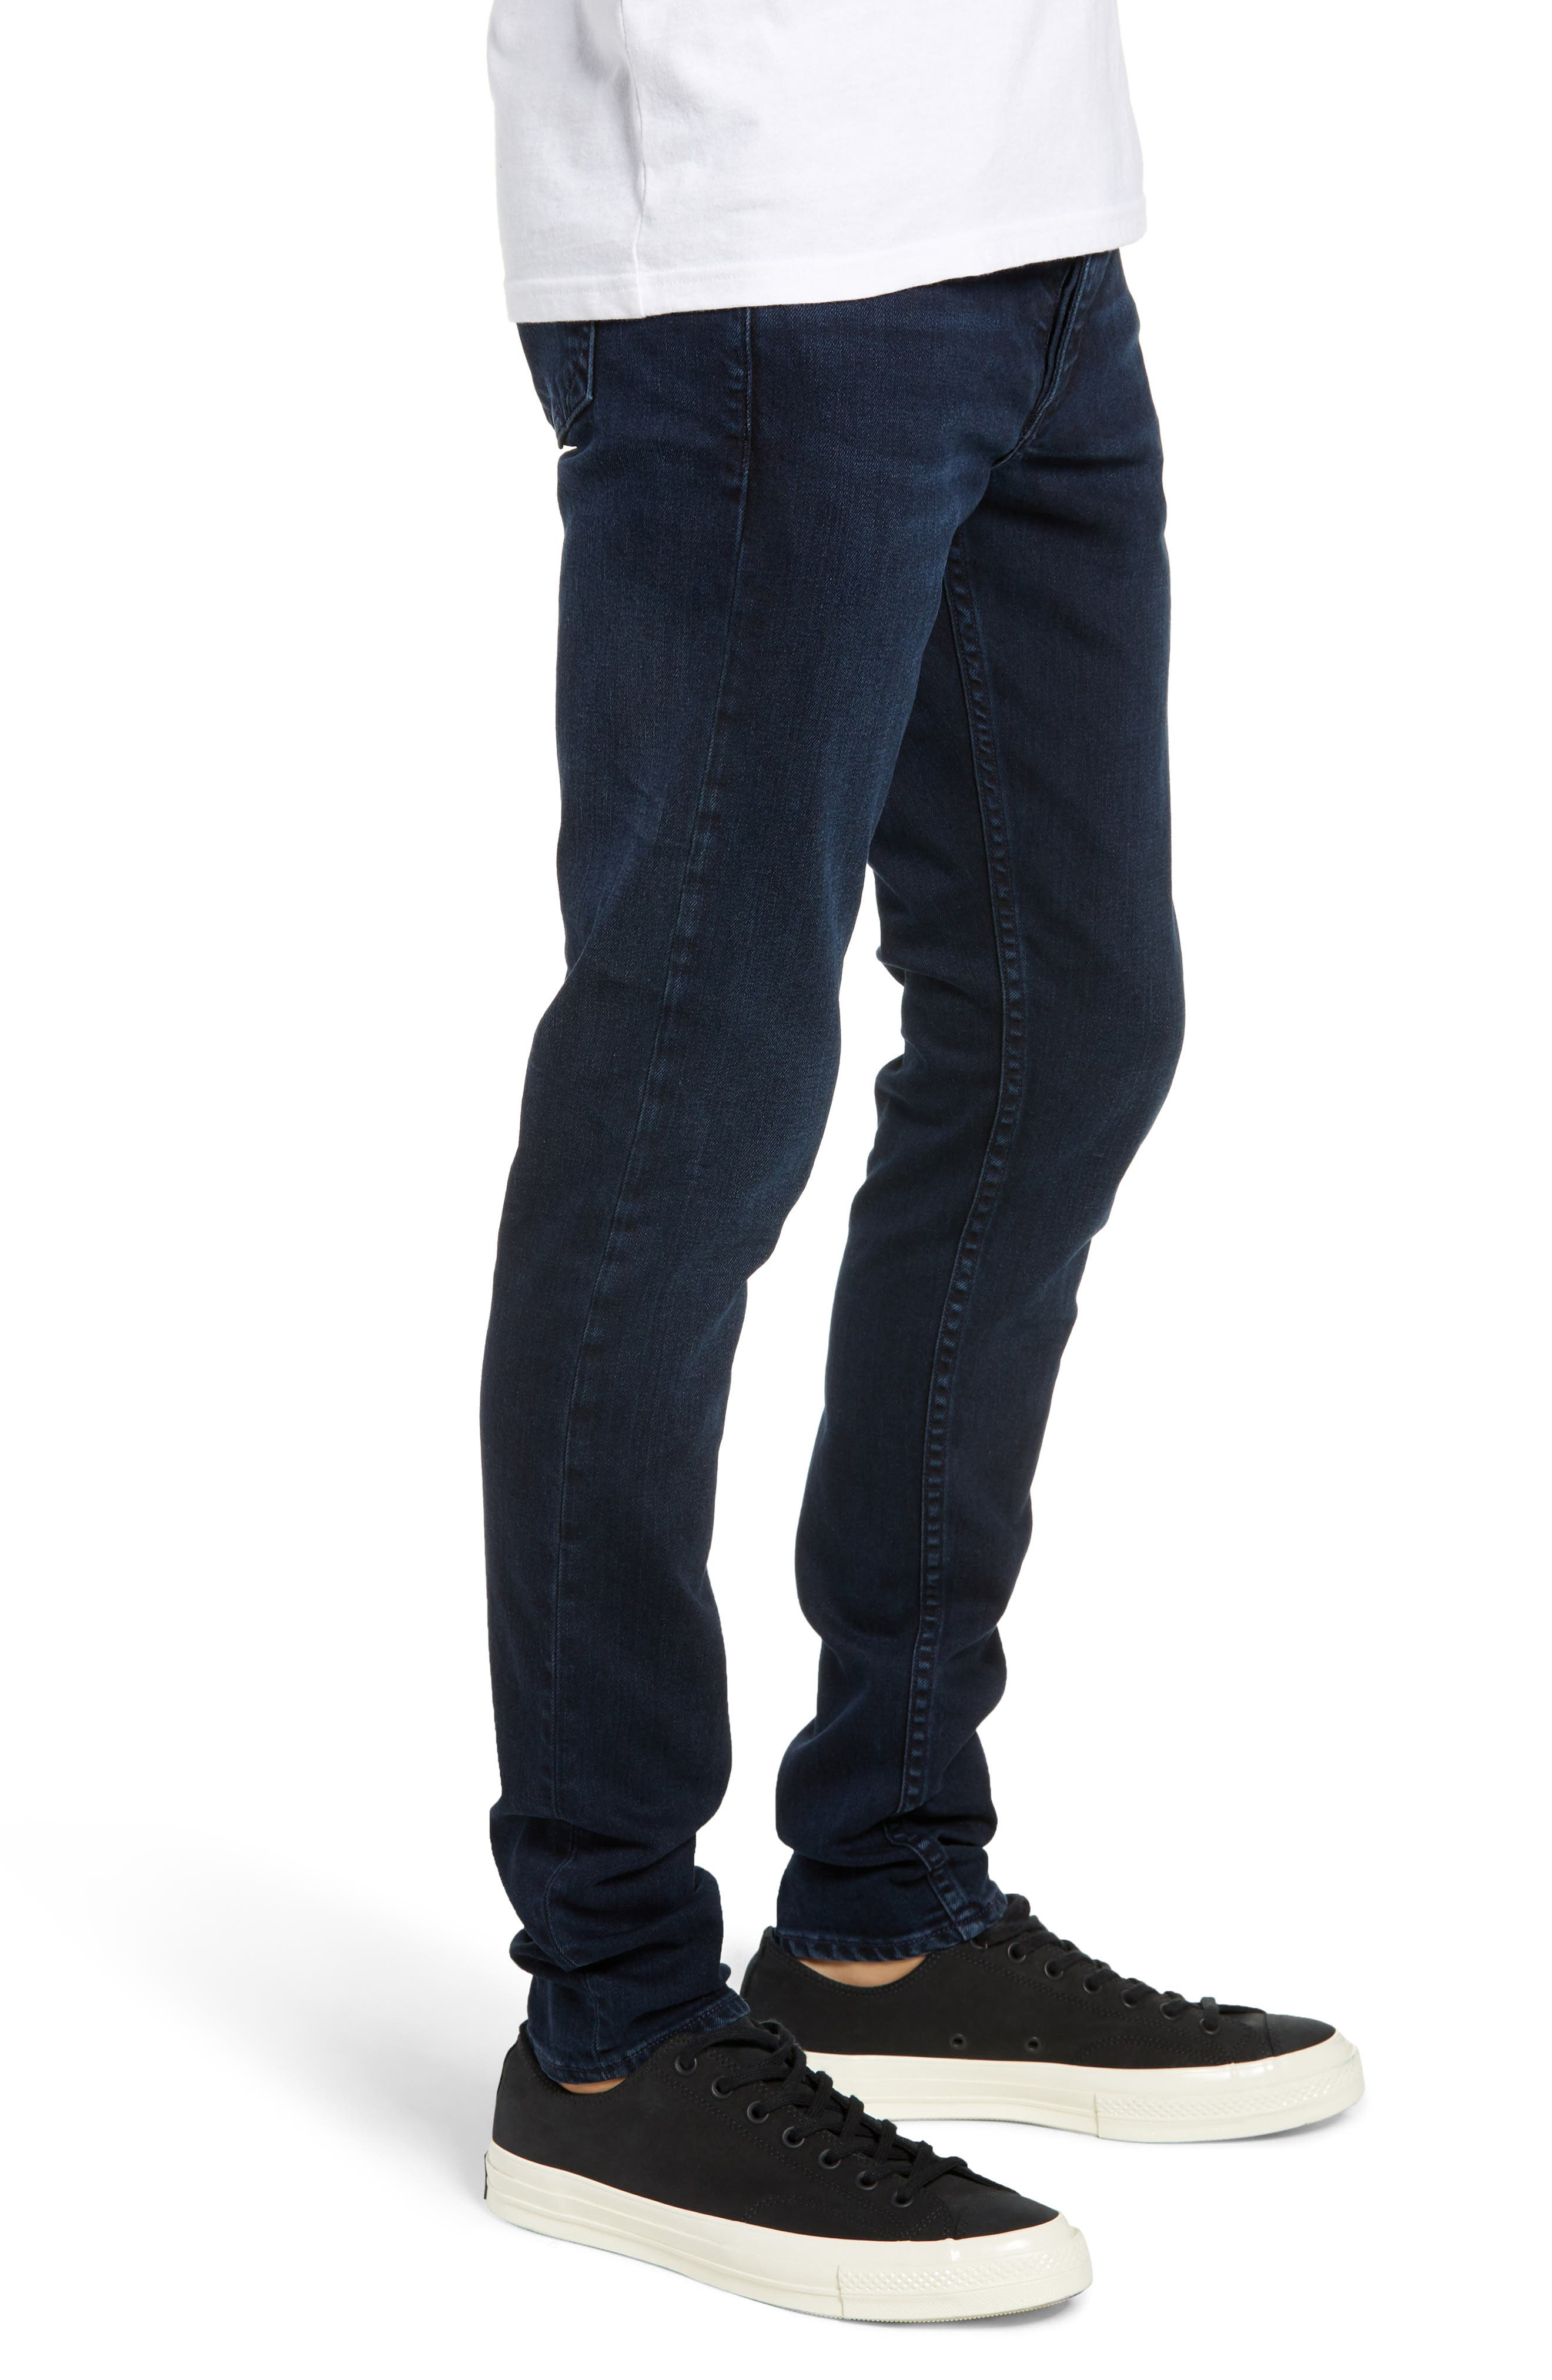 Fit 1 Skinny Fit Jeans,                             Alternate thumbnail 3, color,                             420